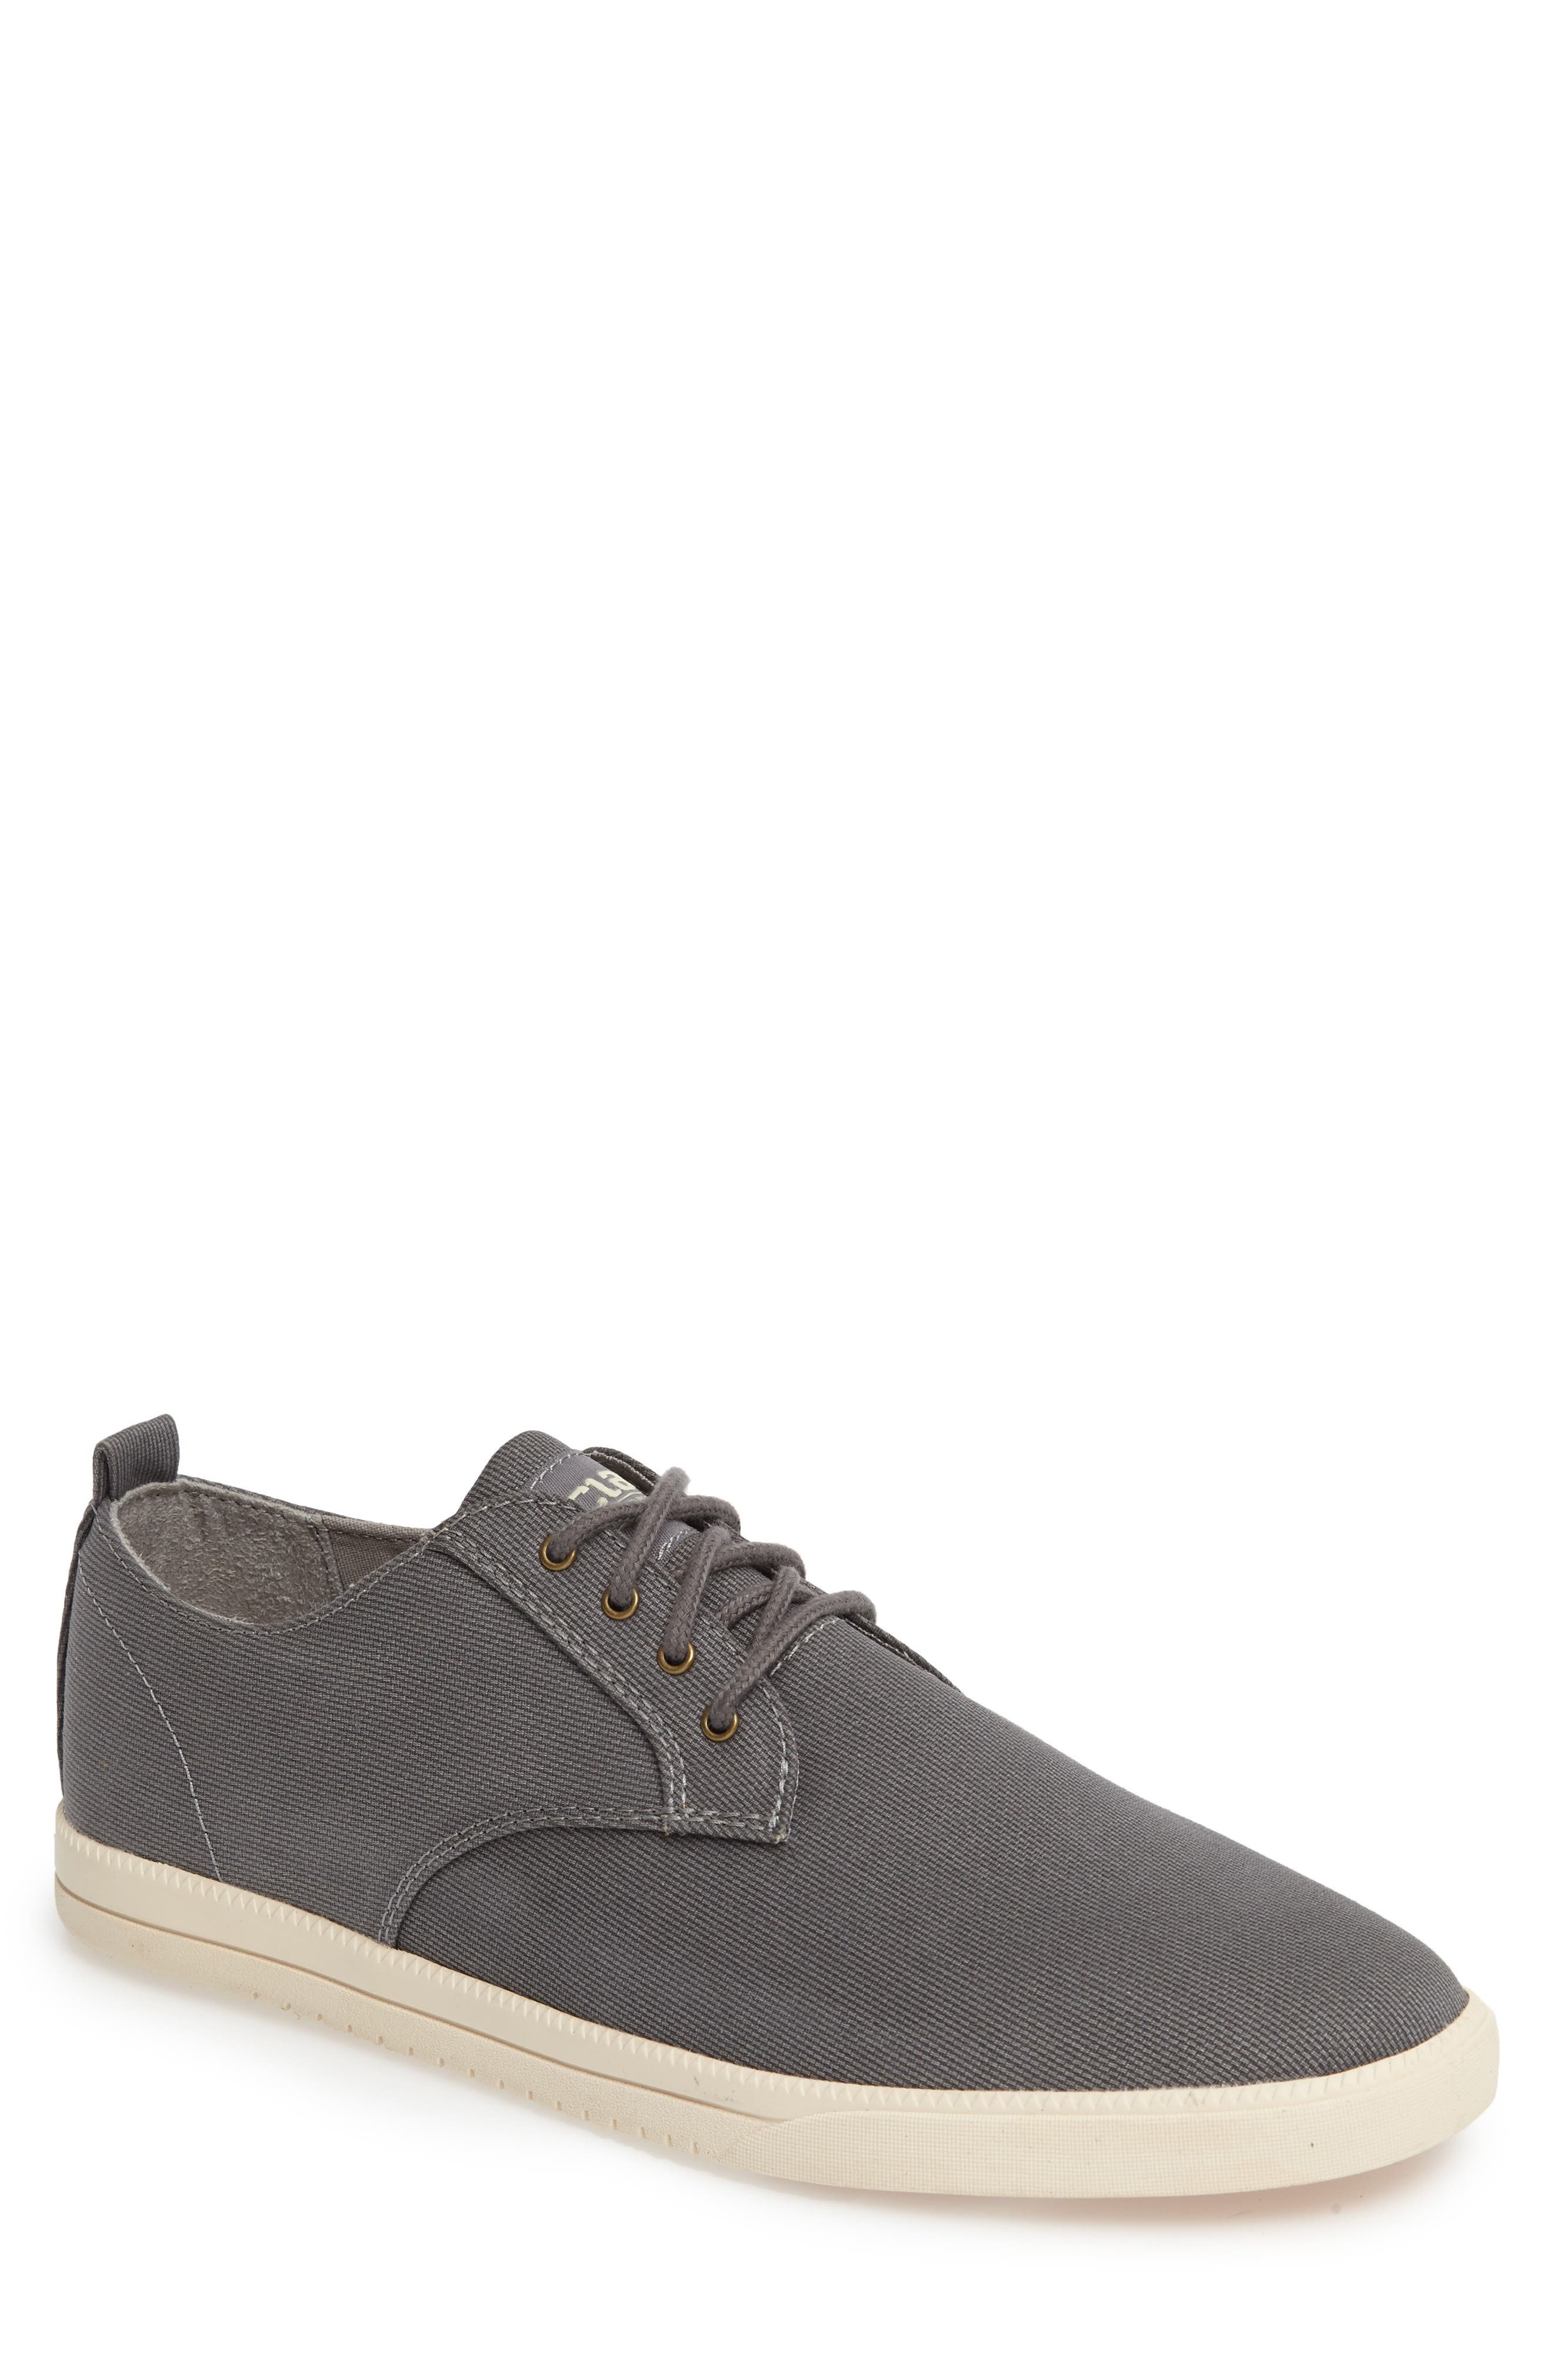 CLAE 'Ellington' Sneaker in Charcoal Textured Canvas